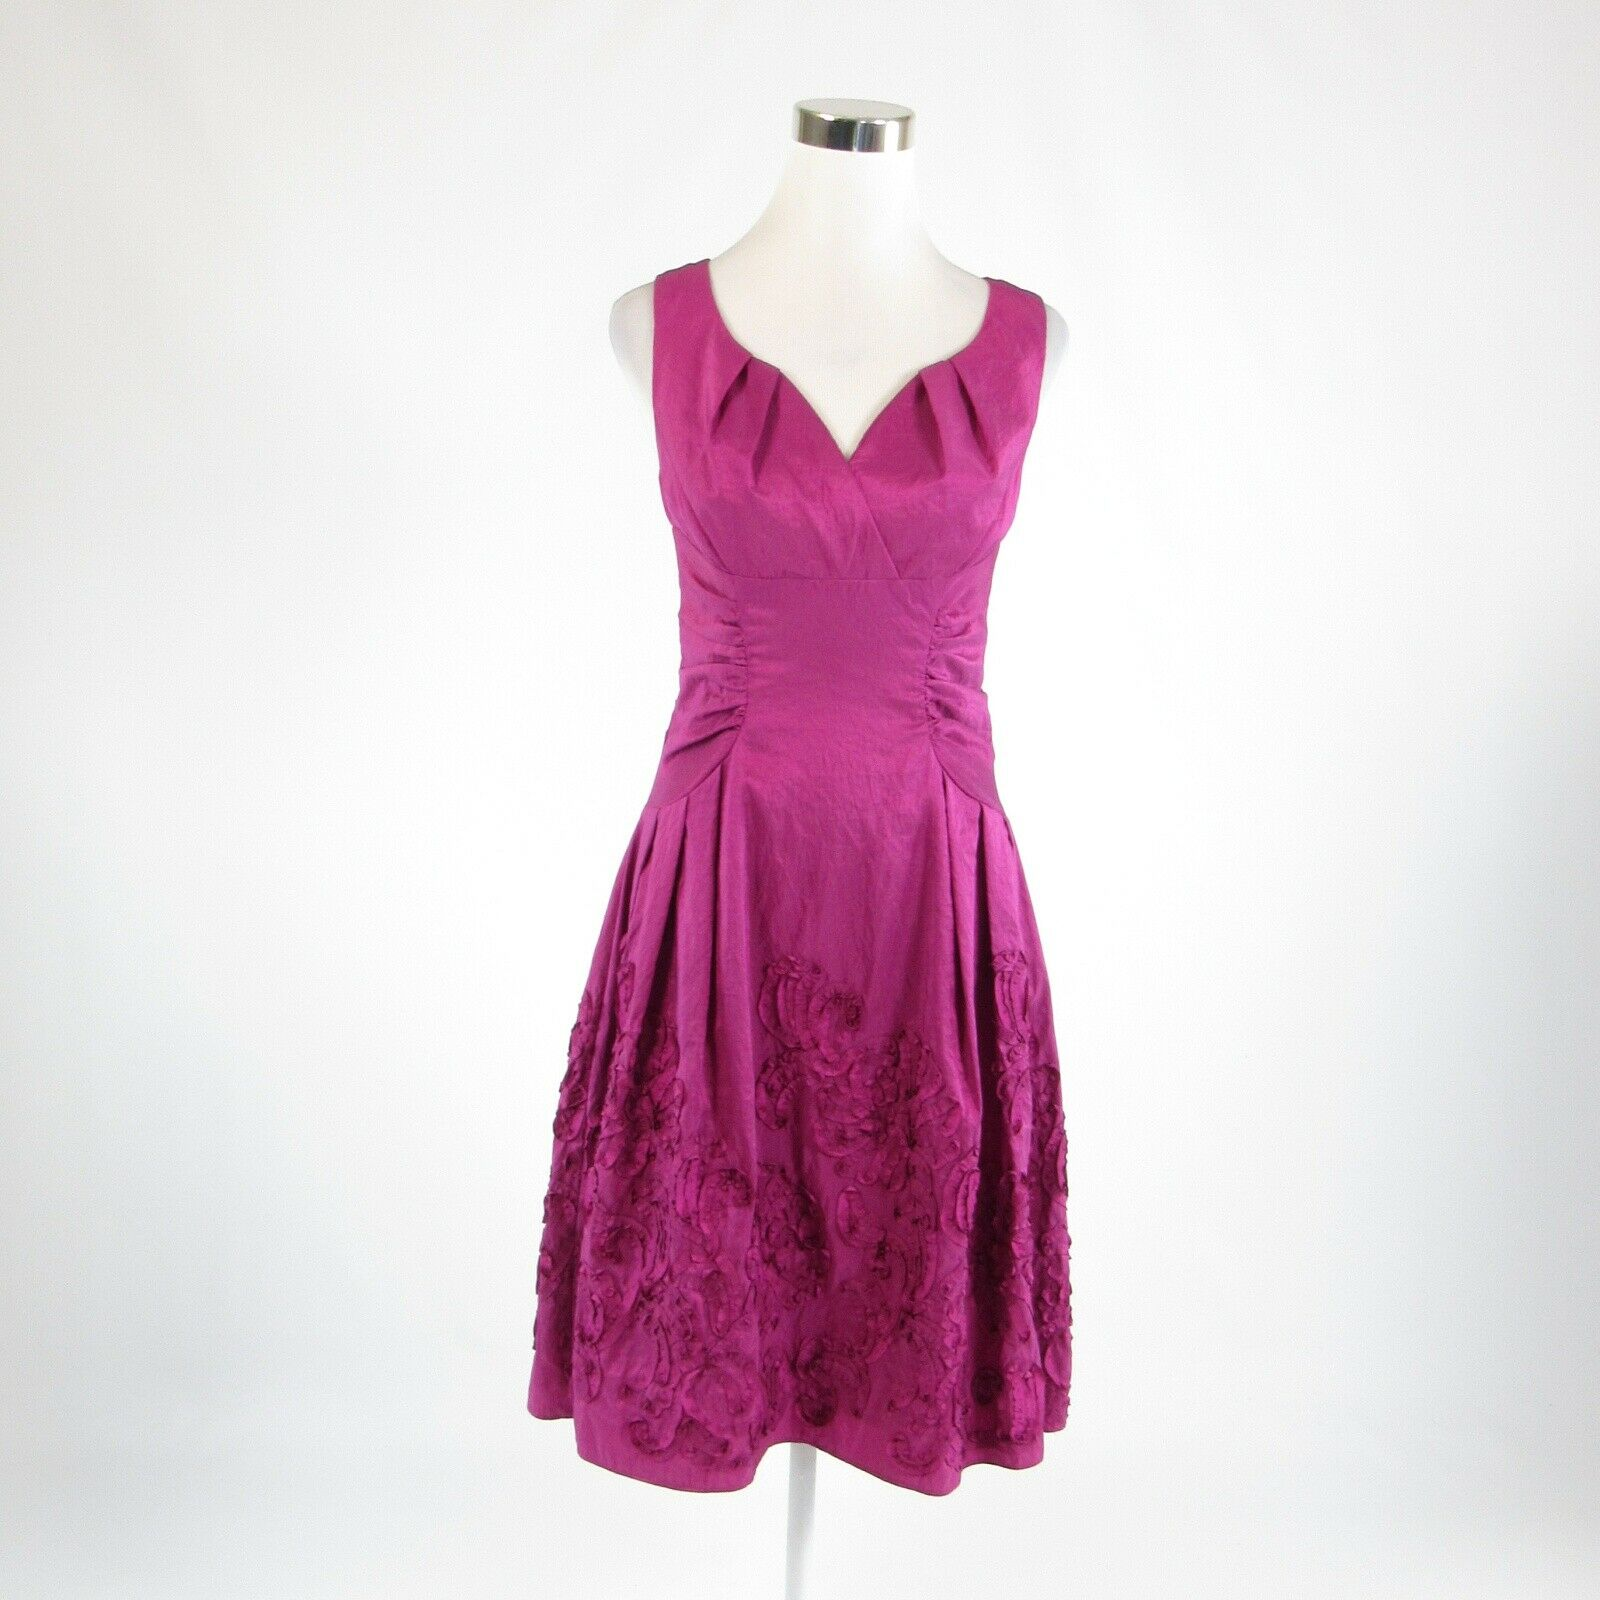 Purple ADRIANNA PAPELL sleeveless A-line dress 4